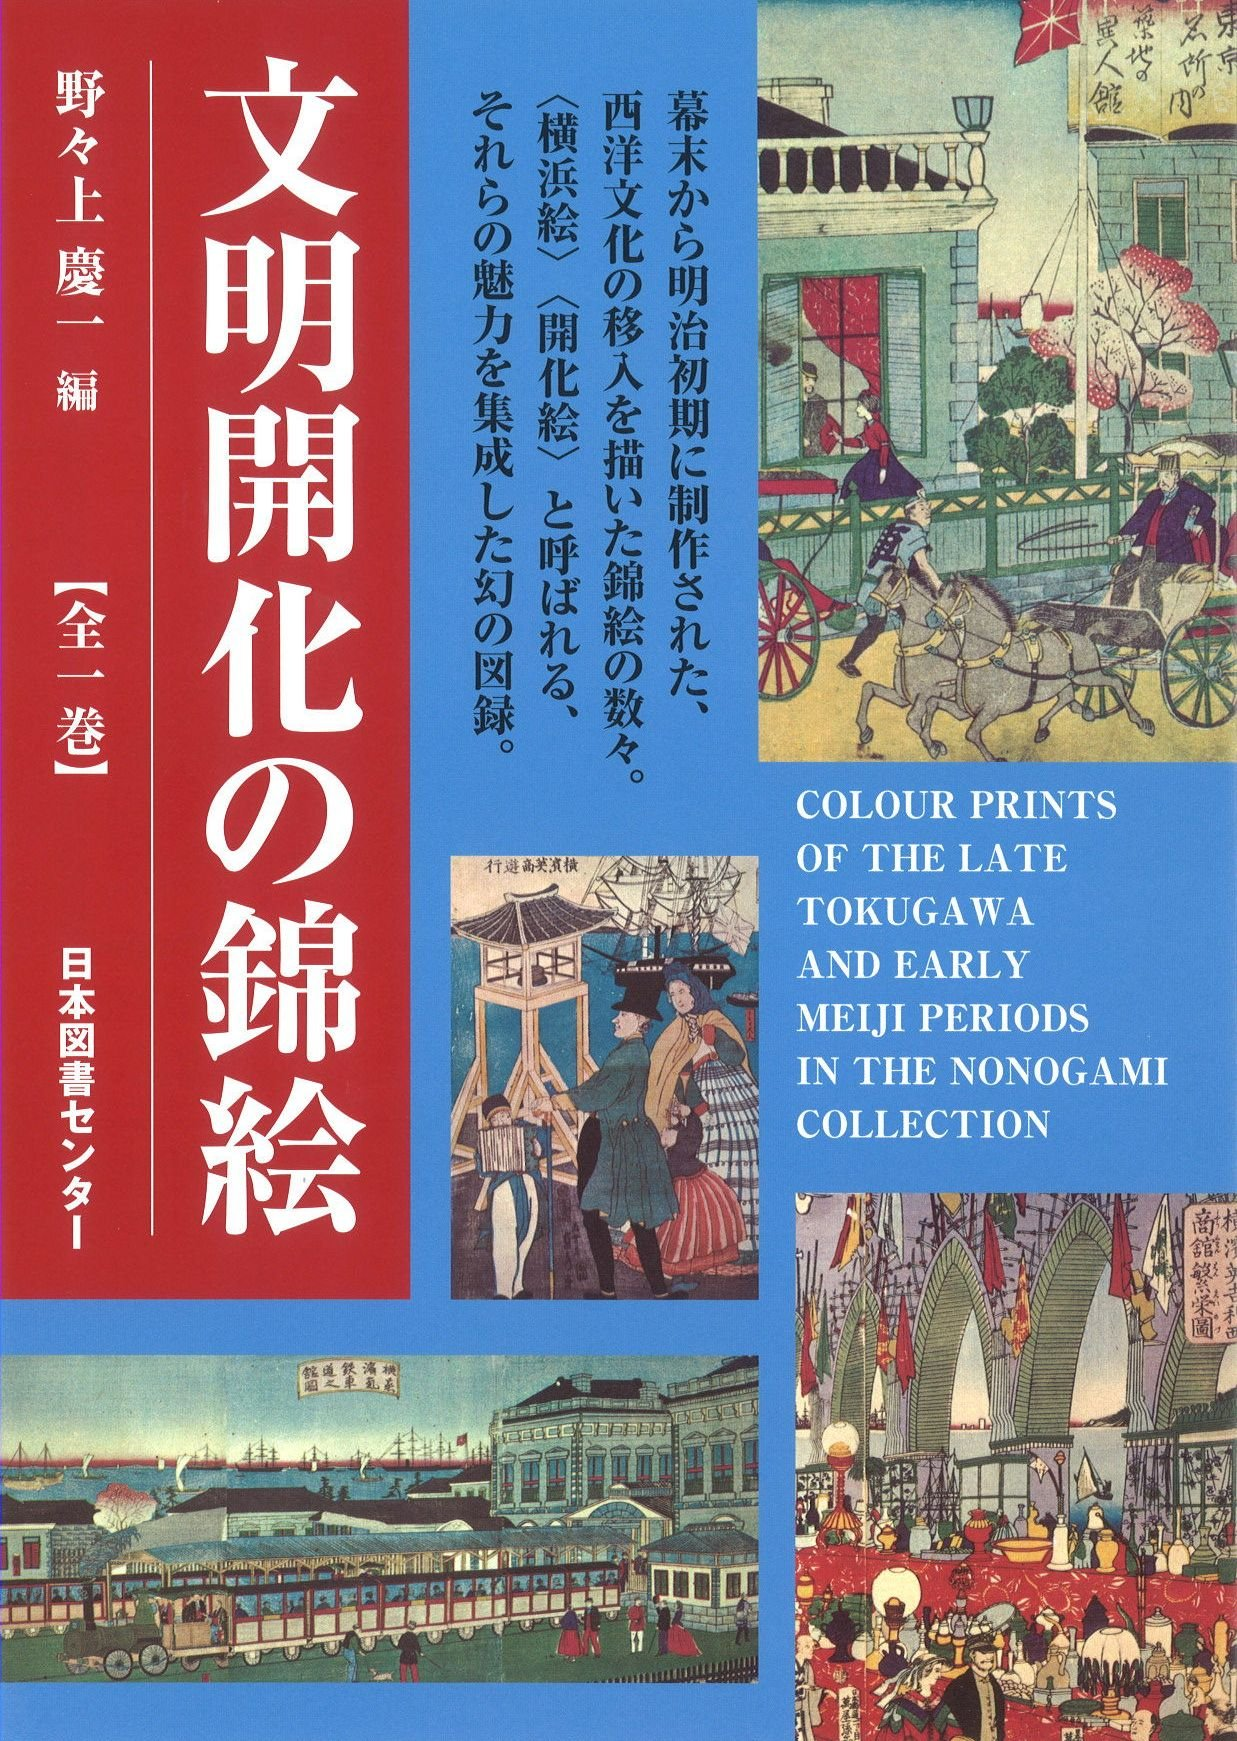 Colour Prints of the Late Tokugawa and Early Meiji Periods in the Nonogami Collection Text fb2 ebook